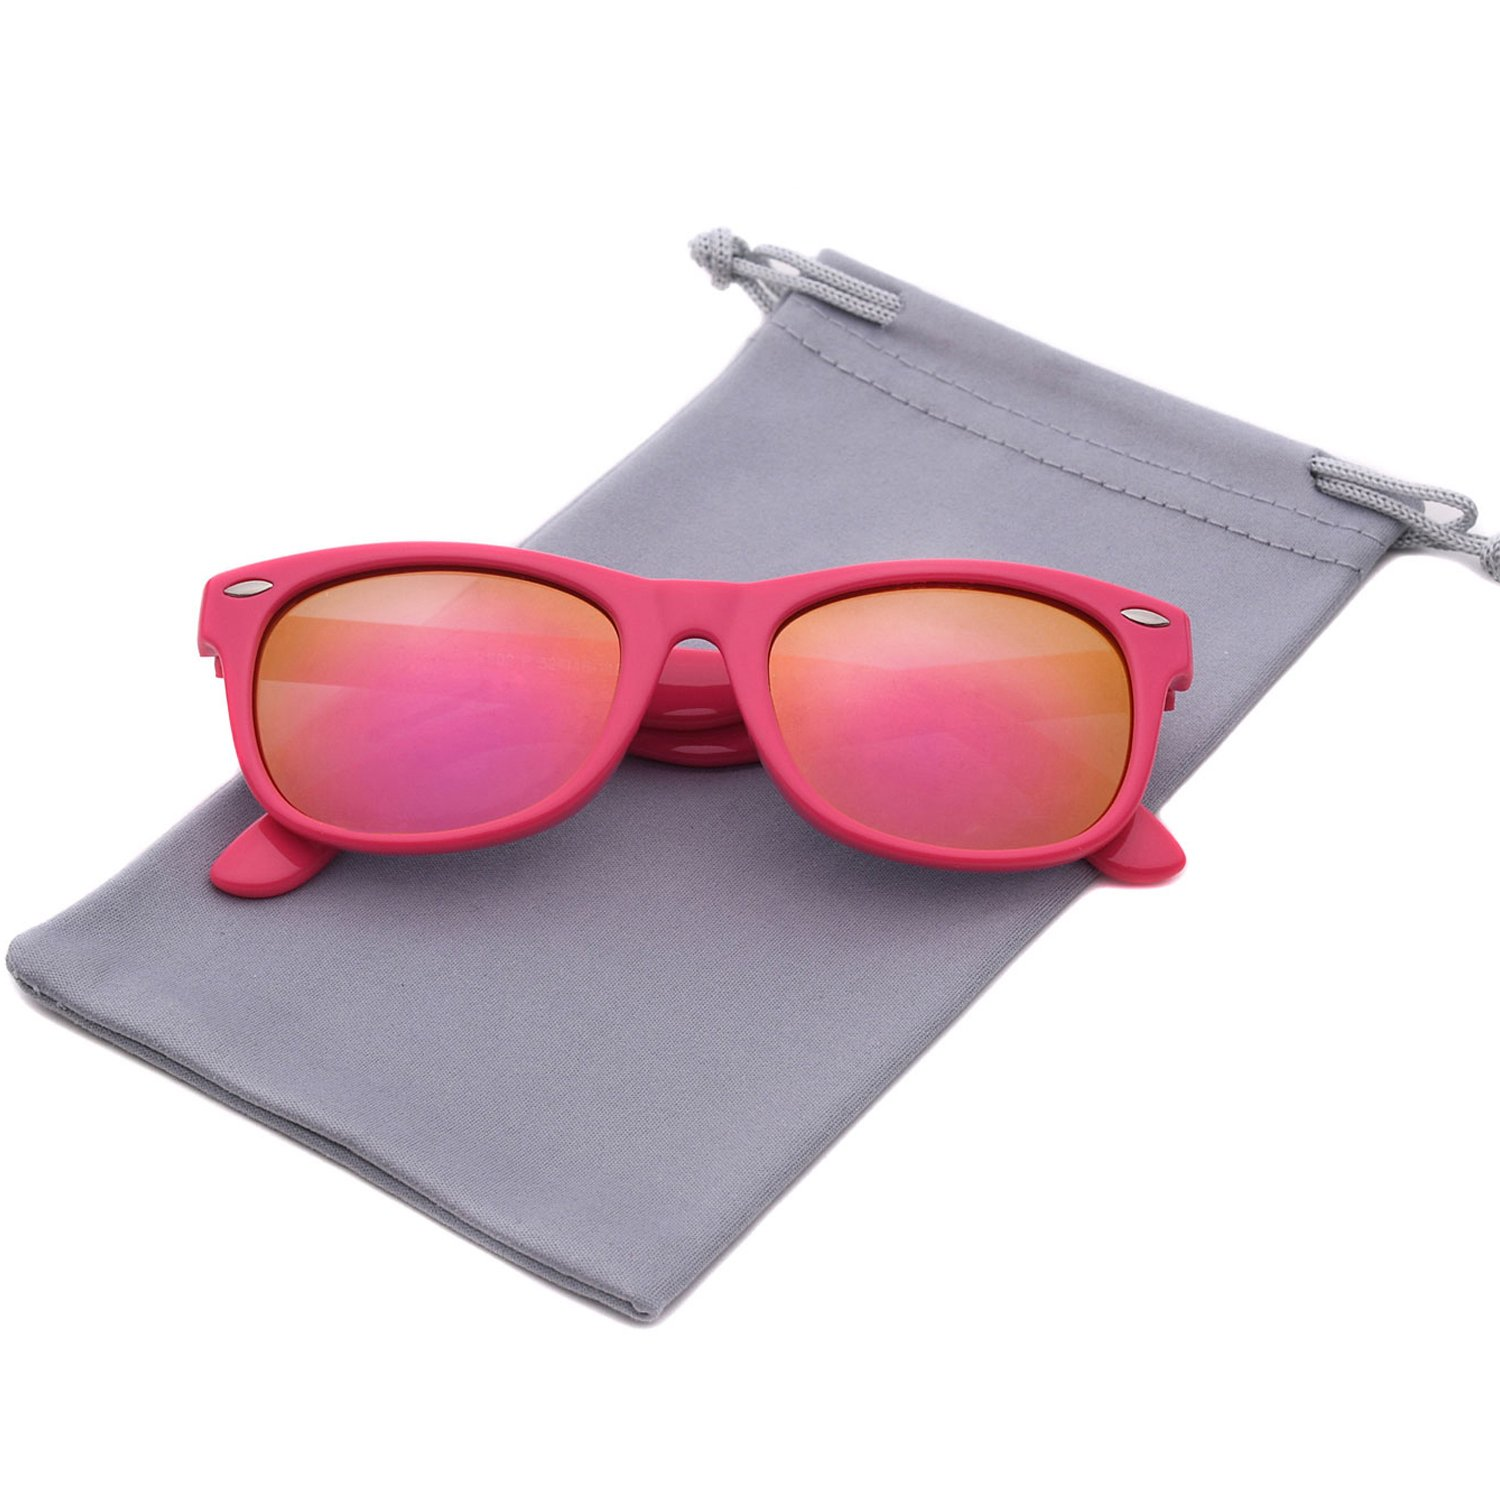 YAMAZI Kids Polarized Sunglasses Sports Fashion For Boys And Girls Mirrored Lens (Pink | Pink Mirrored Lens, Gray)